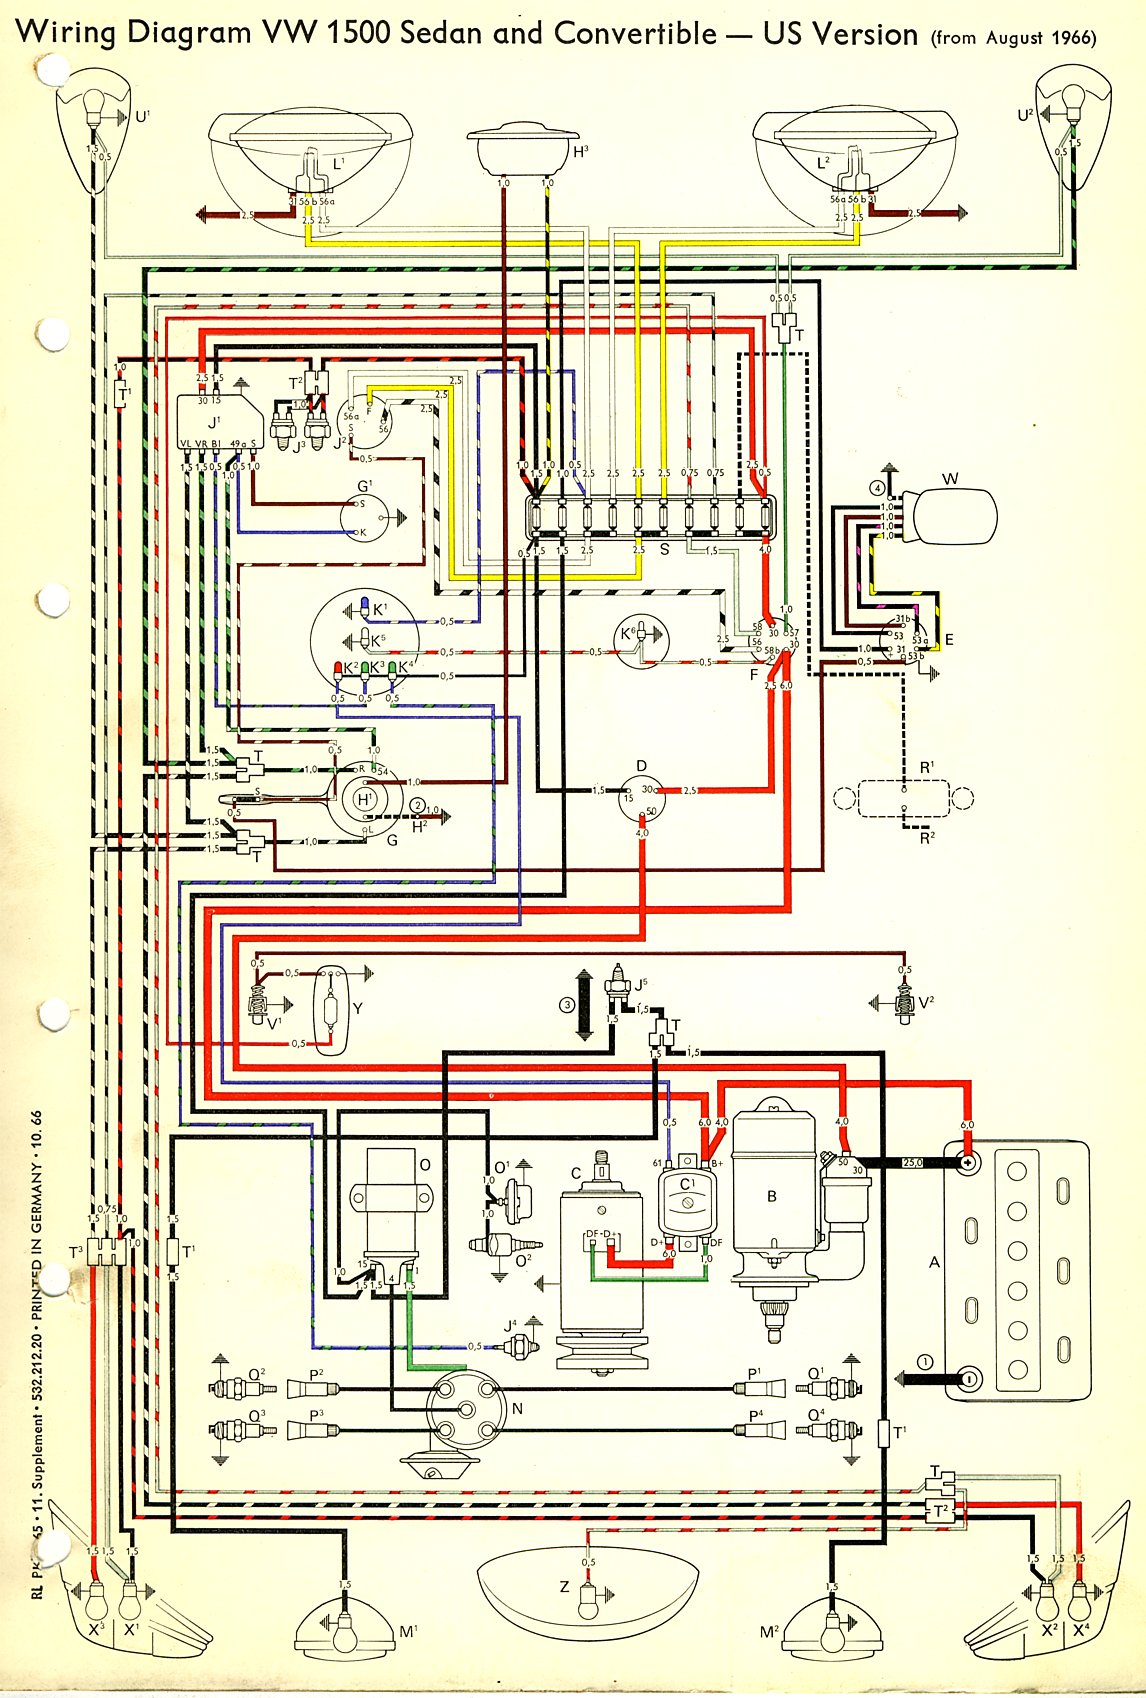 thesamba com type 1 wiring diagrams1966 Beetle Wiring Diagram #3